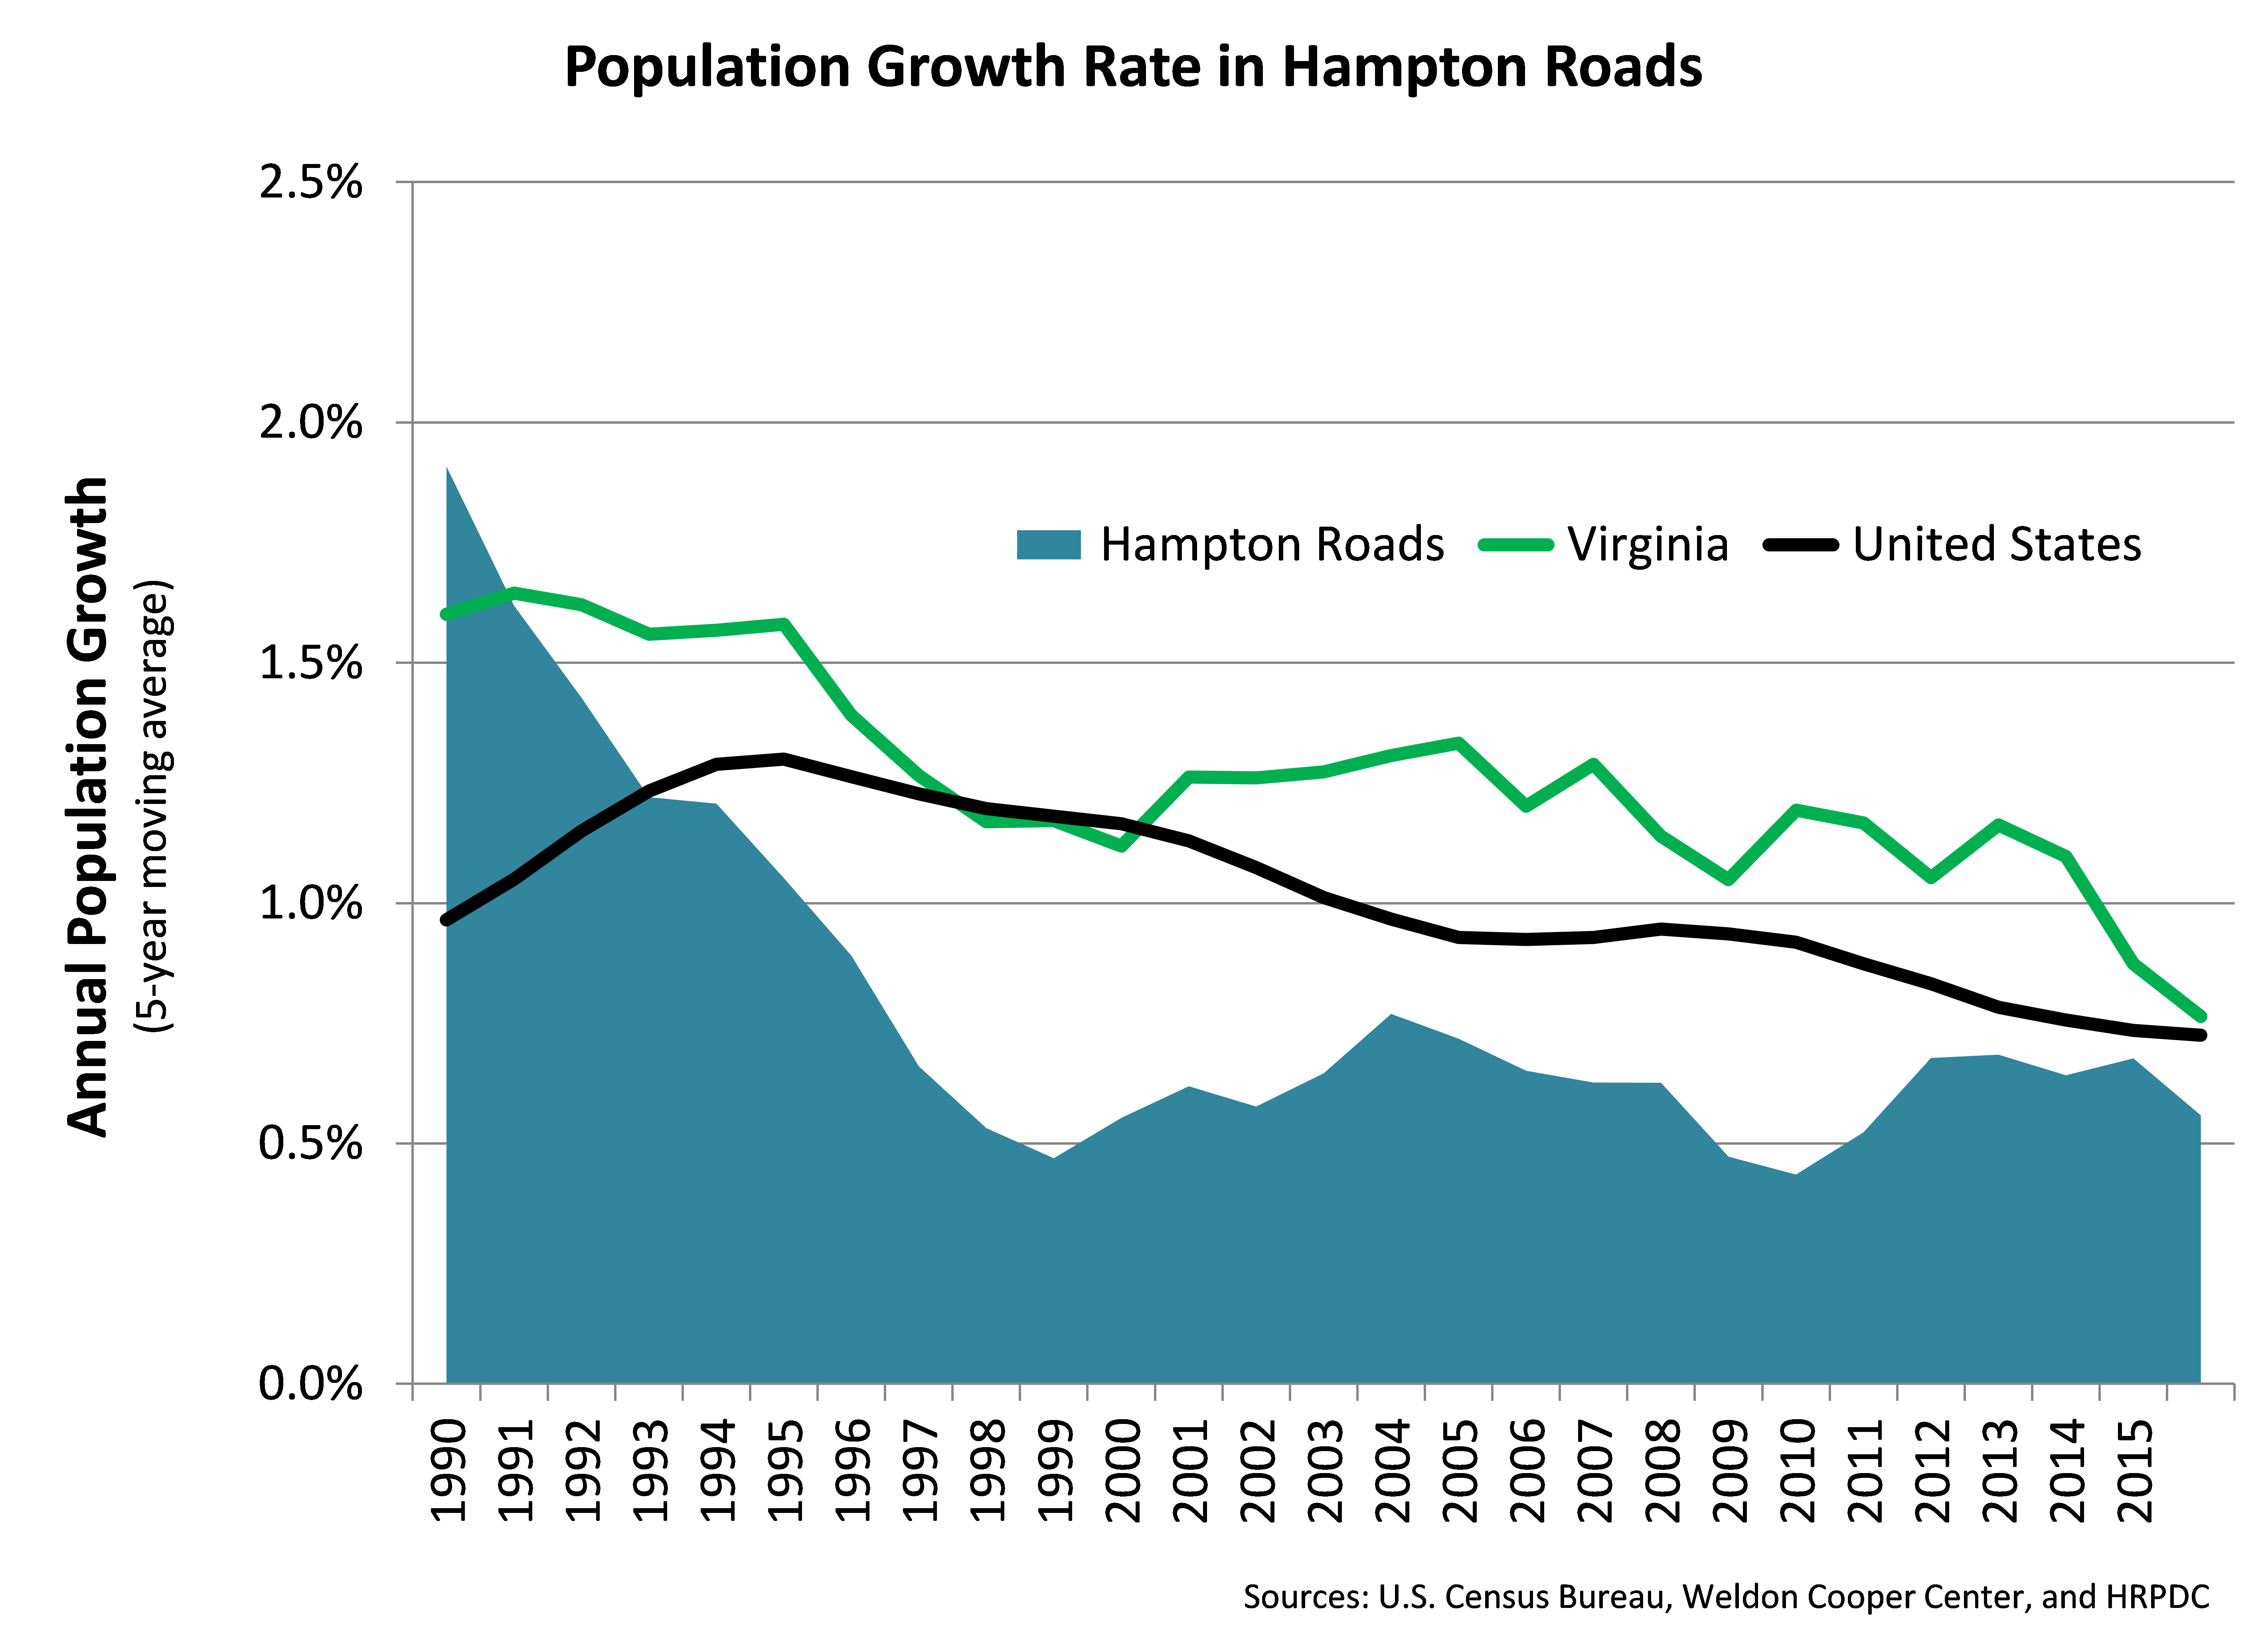 Population Growth in Hampton Roads